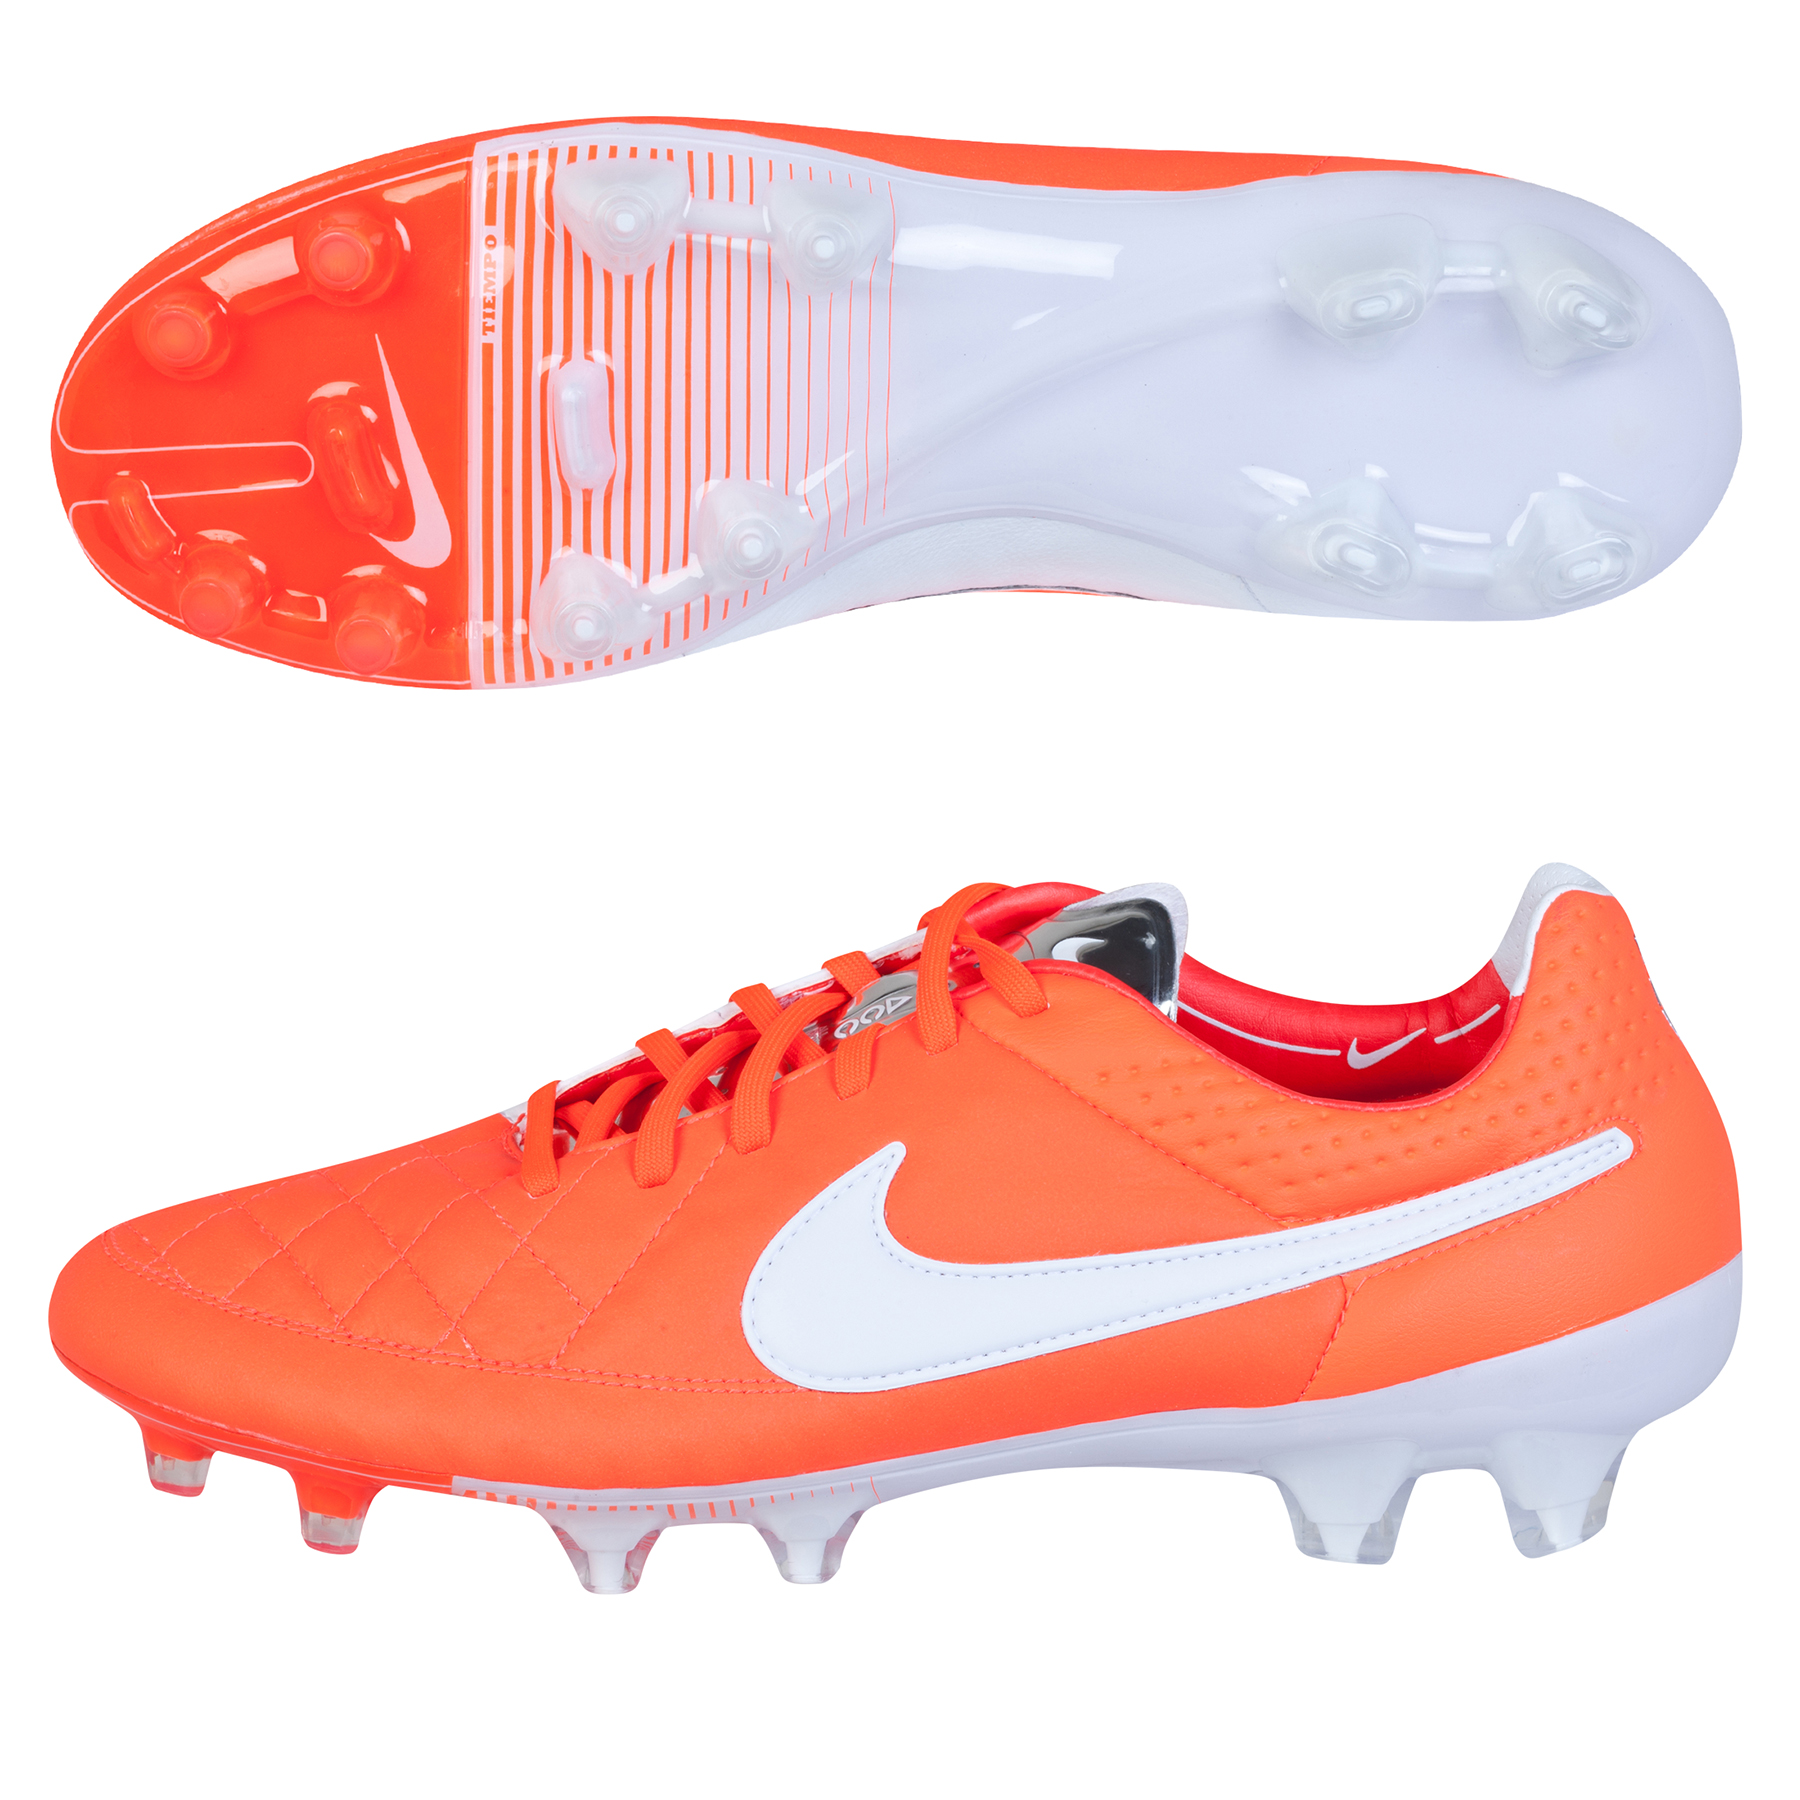 Nike Tiempo Legend V Firm Ground Football Boots Orange